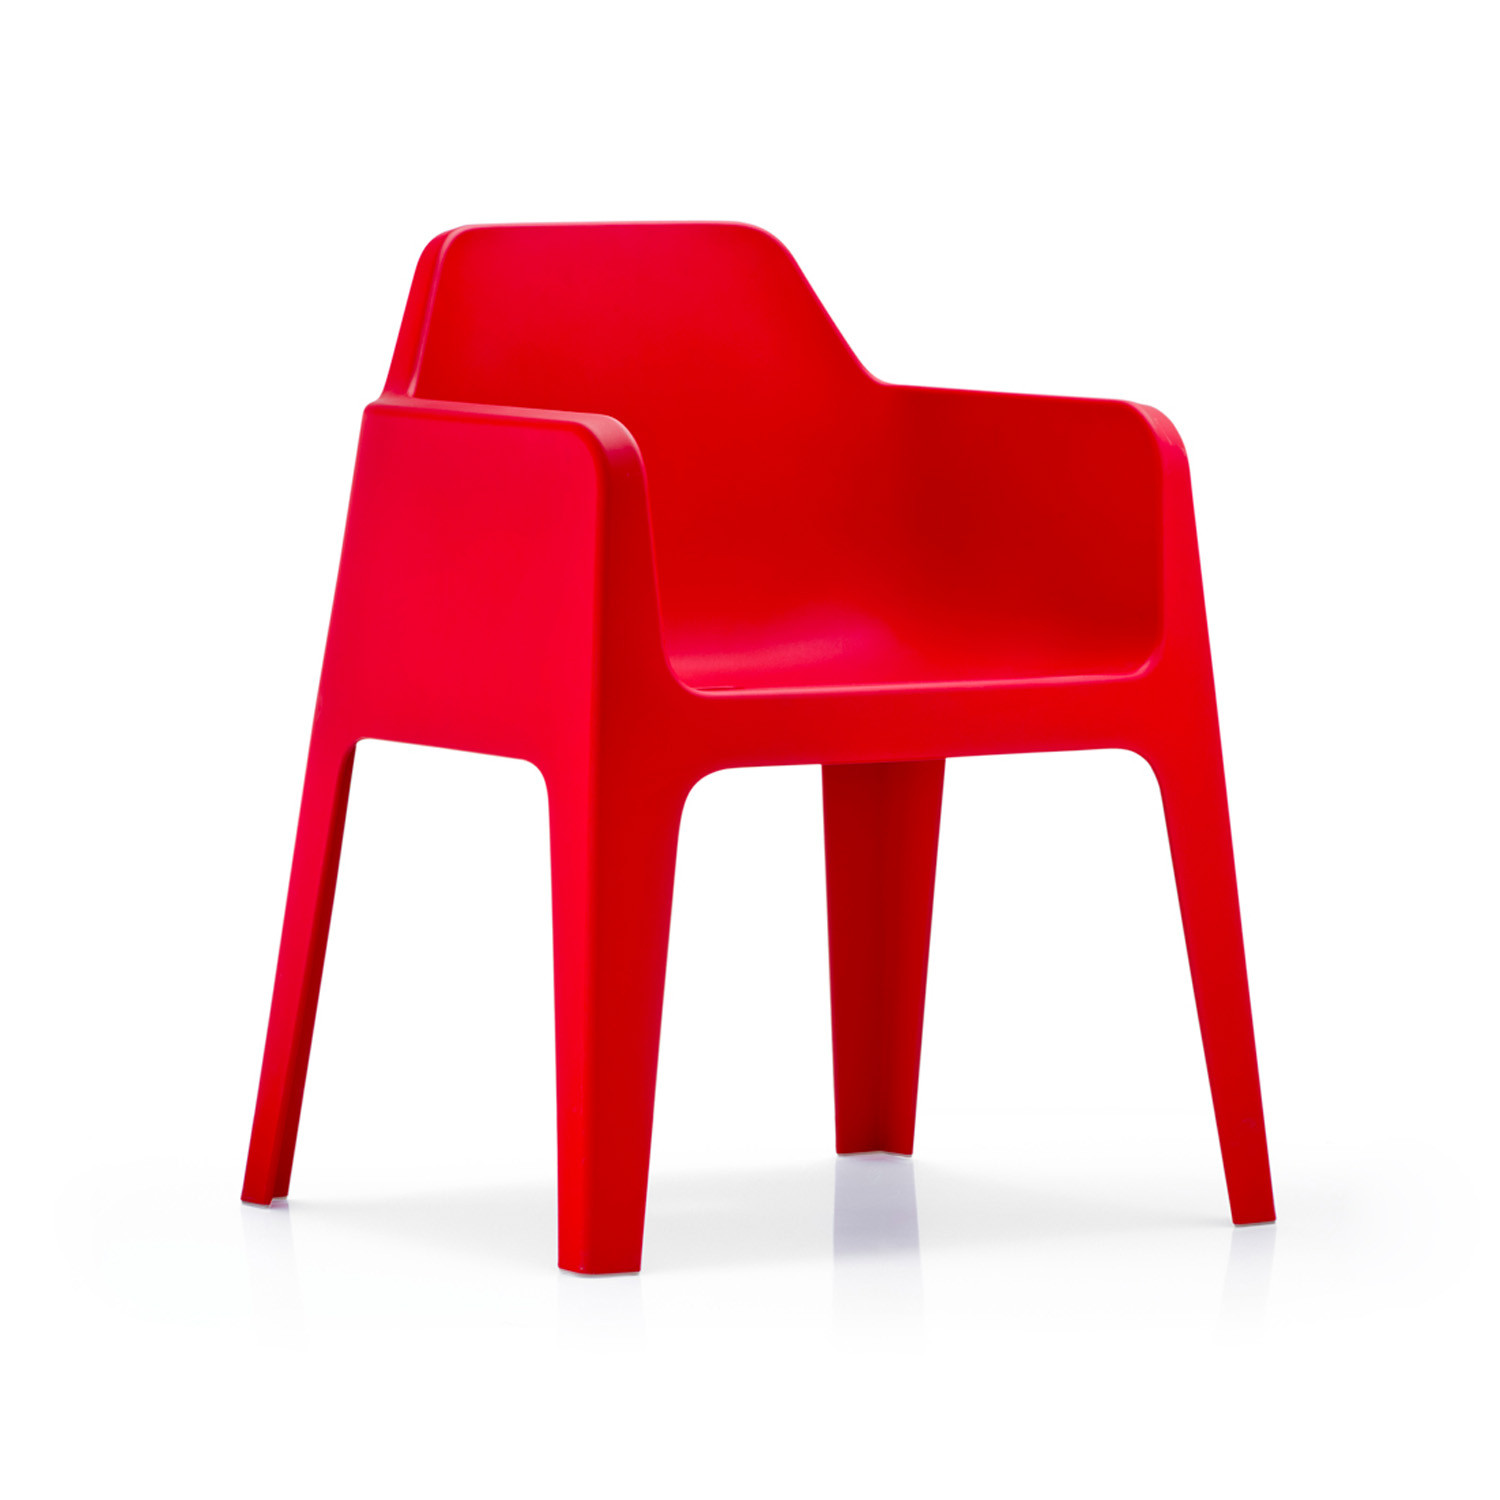 Plus Armchair by Pedrali